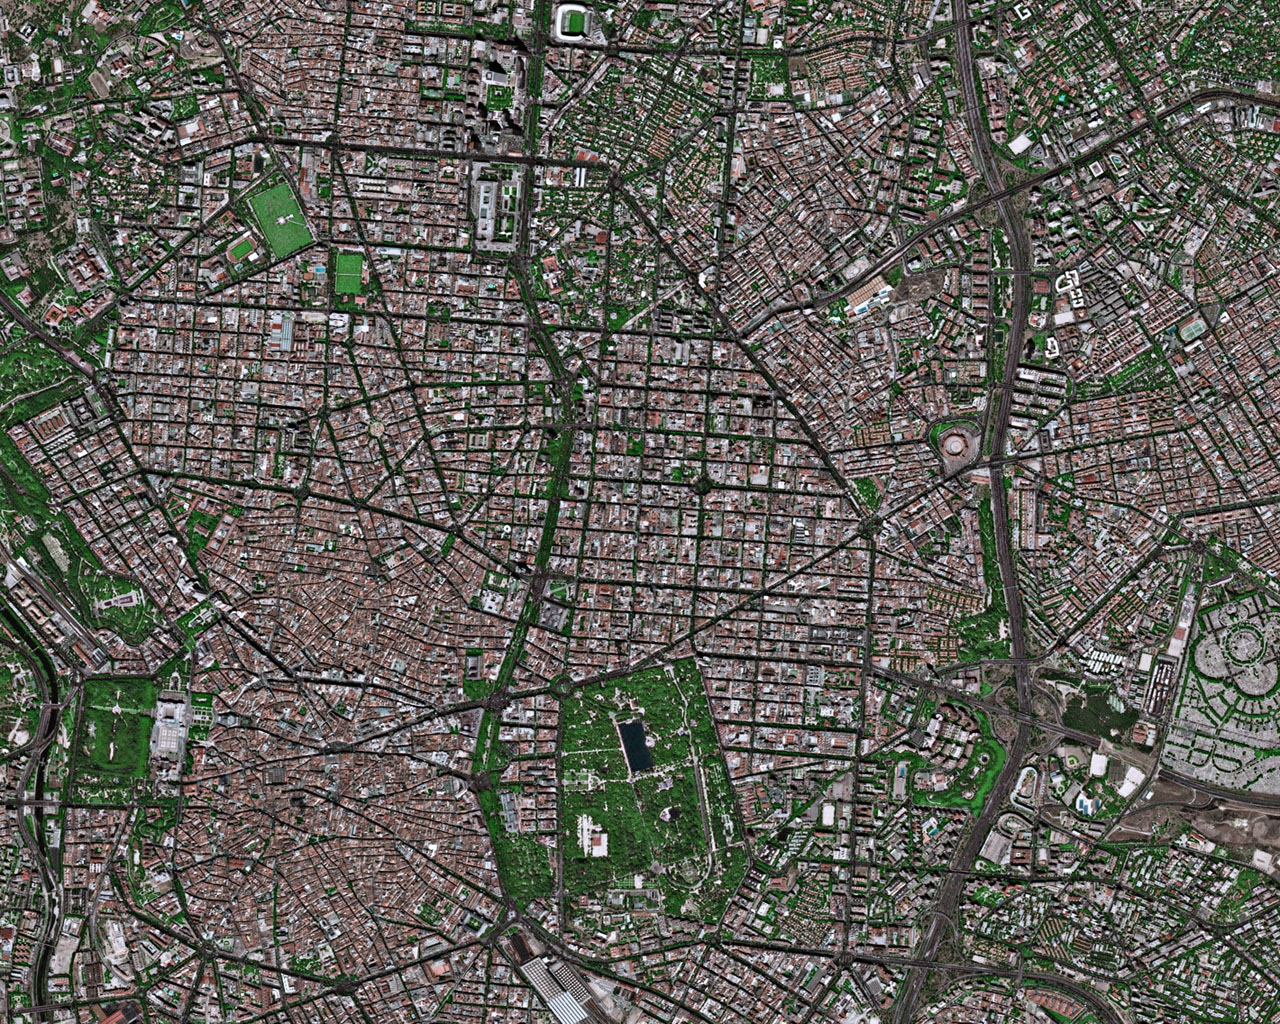 Satellite image of downtown Madrid